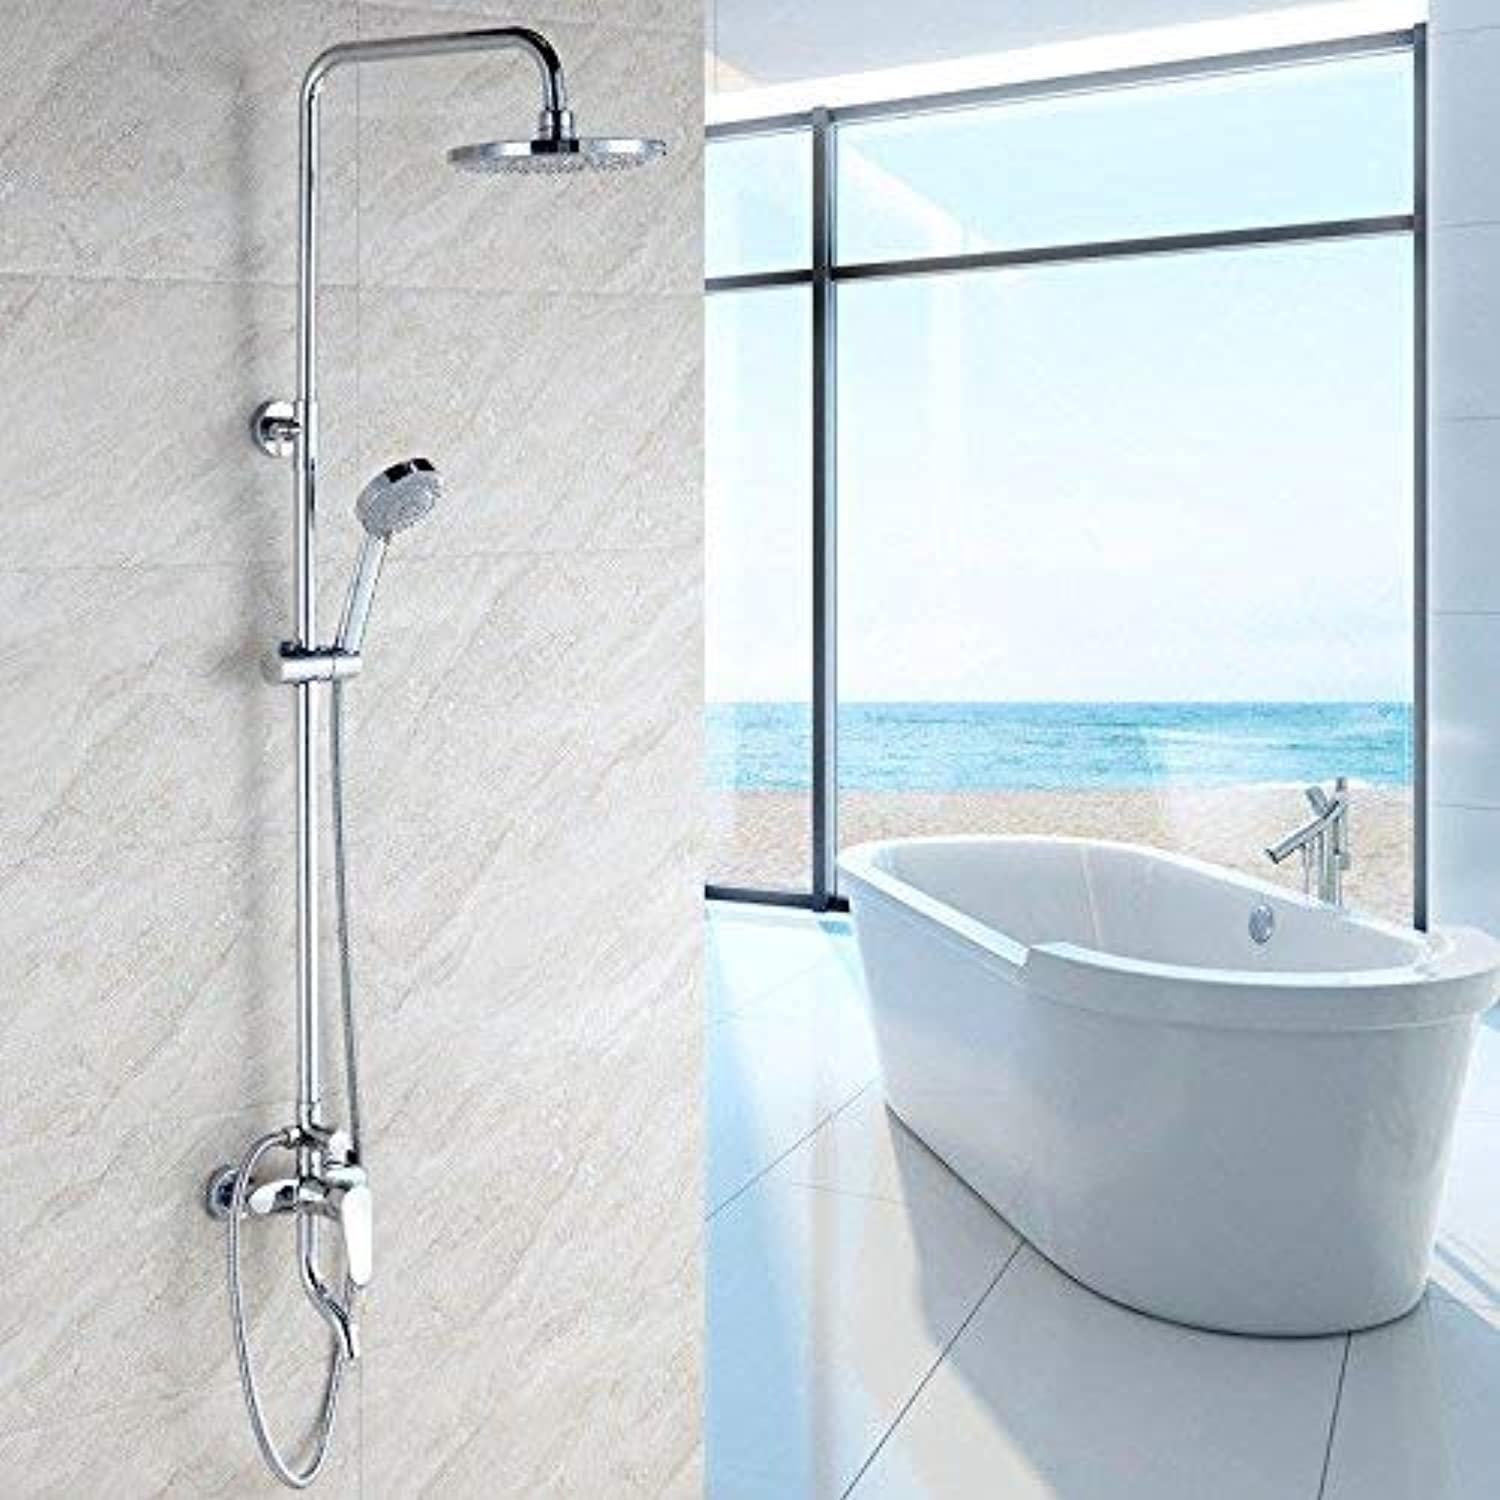 Ywqwdae Taps Kitchen Taps Basin Faucets Cold and Hot Water Mixer Bathroom Mixer Basin Mixer Tap Turbo Shower Set Lift Plating Shower for Kitchen Or Bathroom Taps